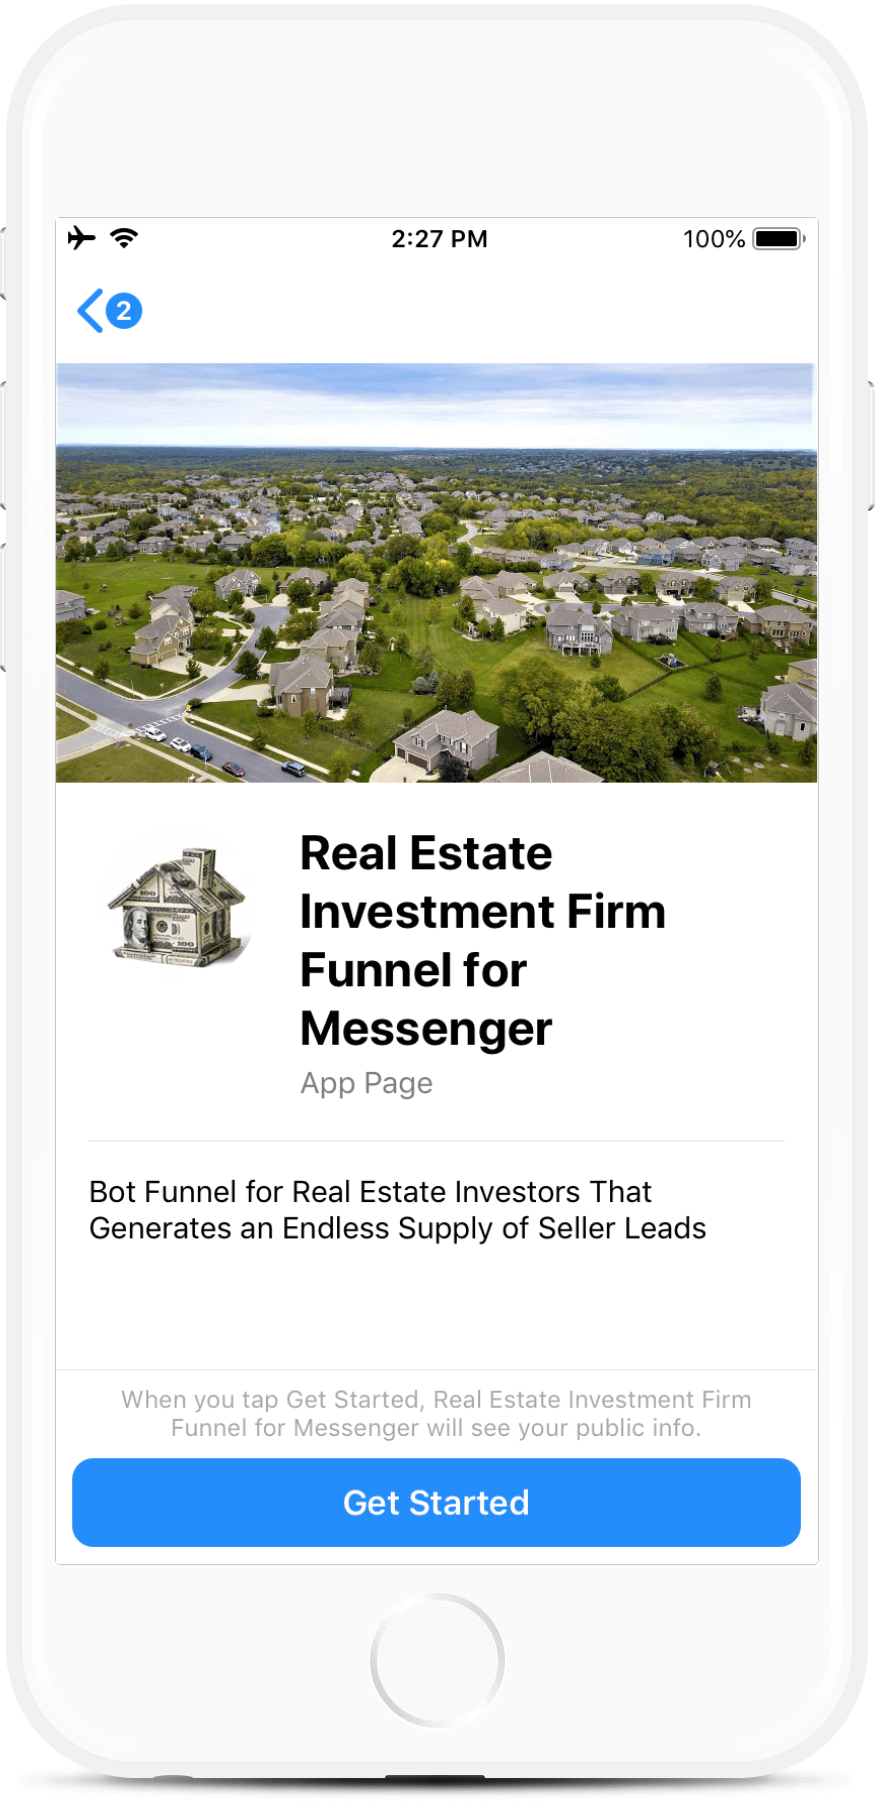 Real Estate Investor Funnel for Messenger